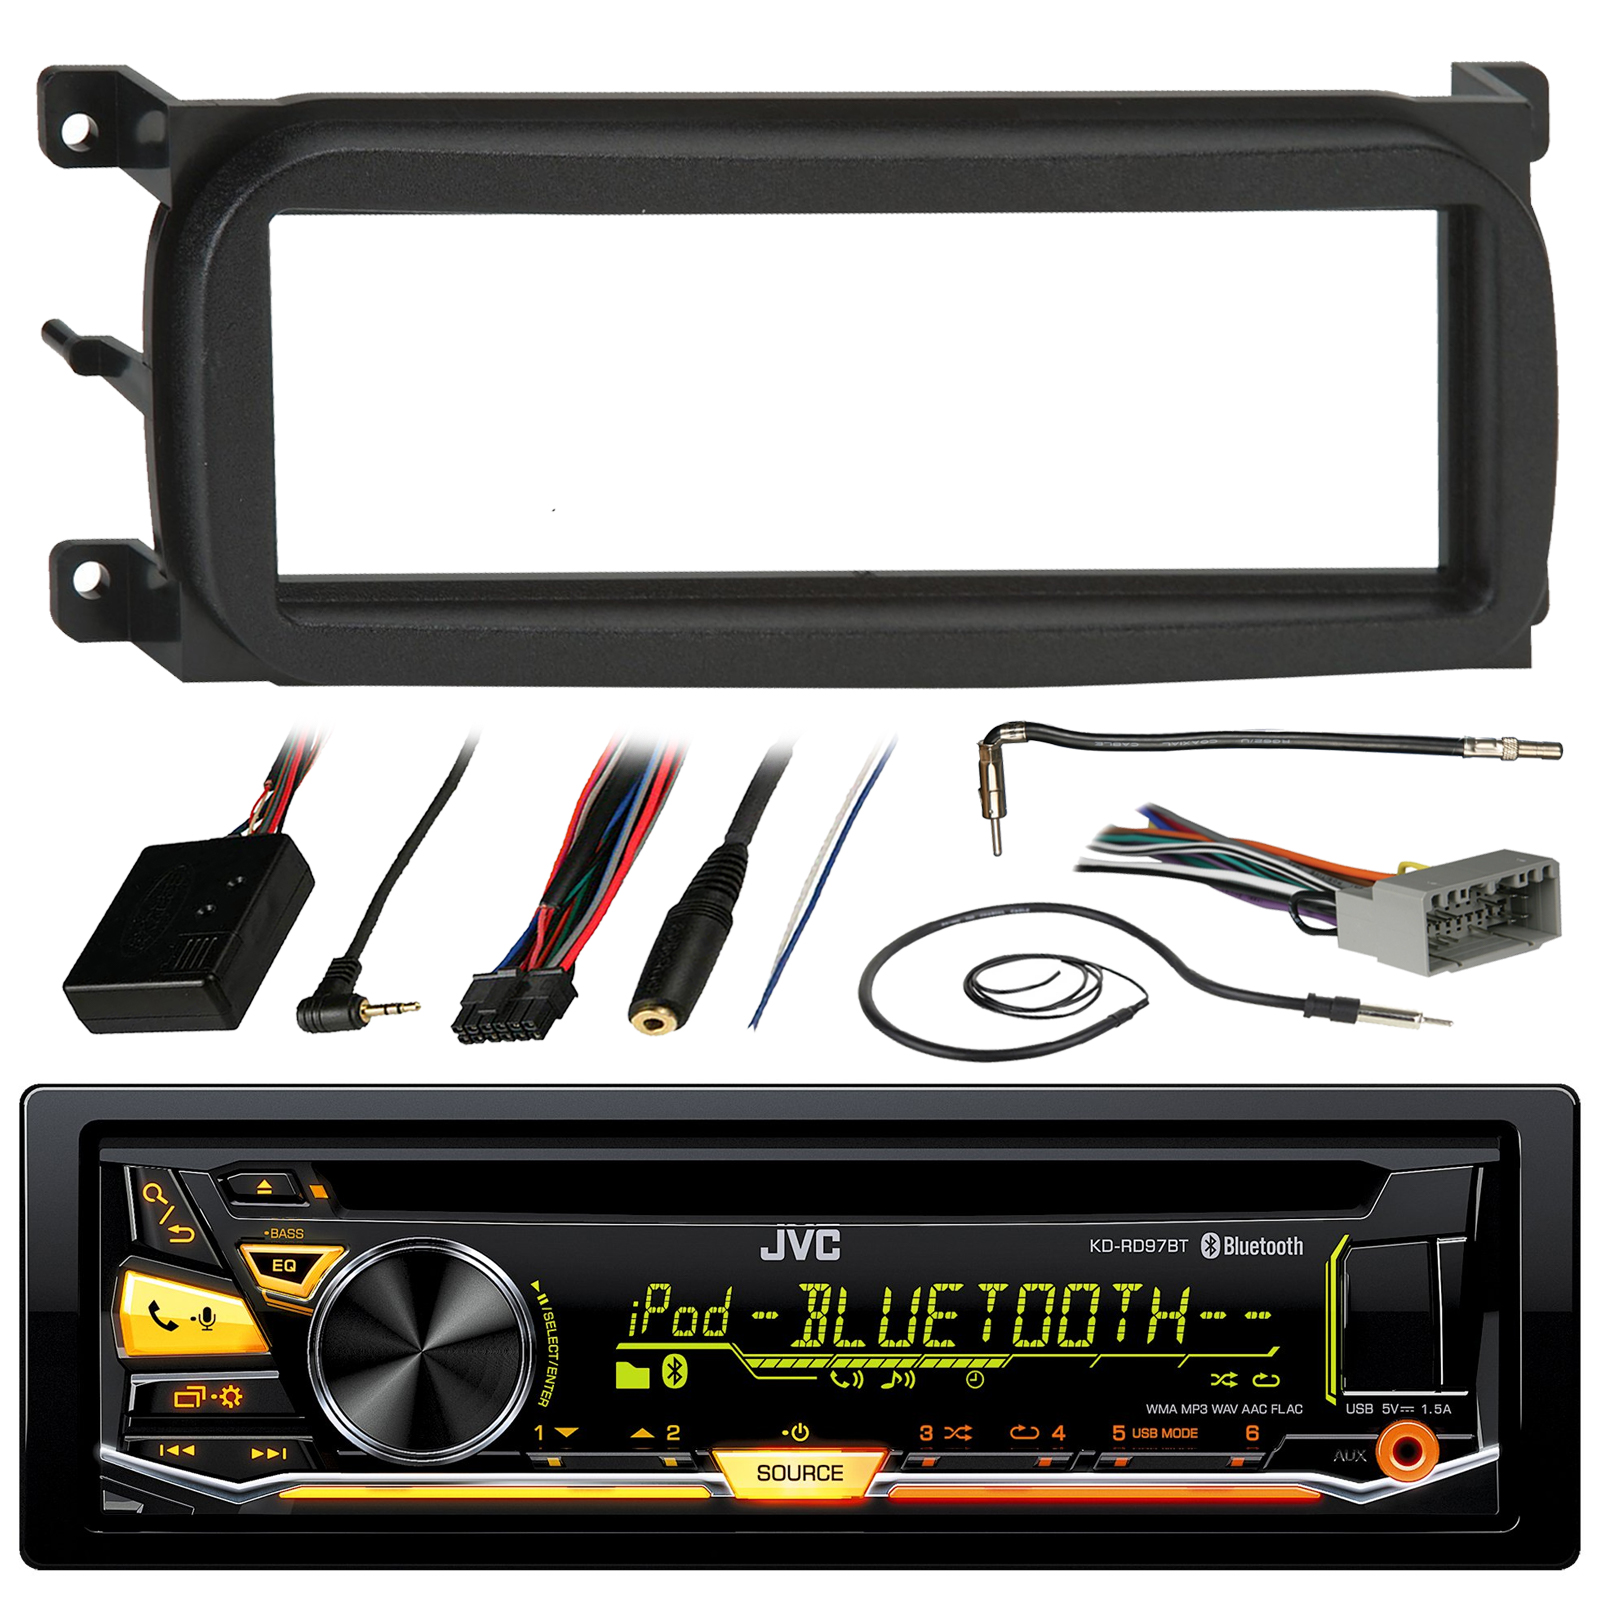 hight resolution of details about bluetooth cd jvc radio chrys jeep 98 09 adapter din kit antenna adapter harness